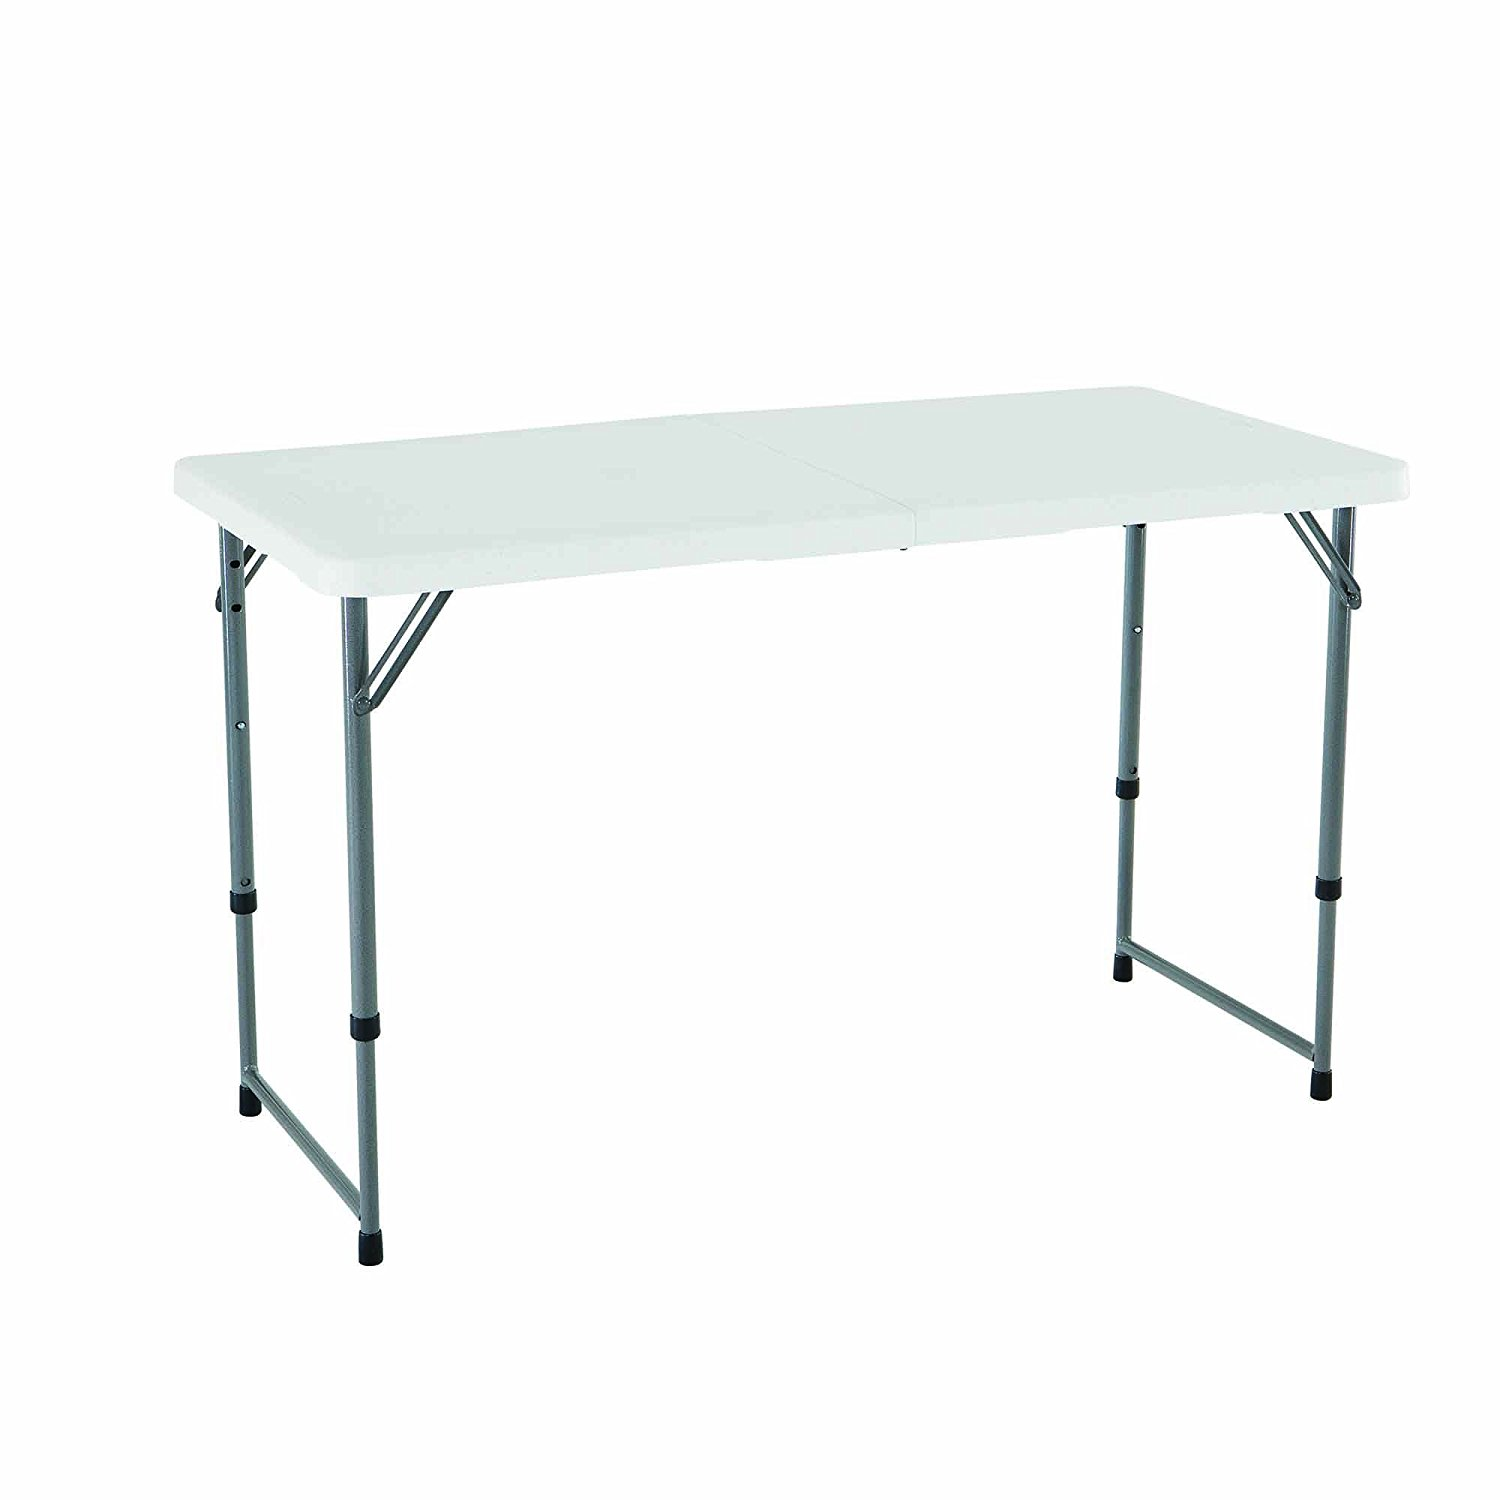 4 ft. Rectangular Table